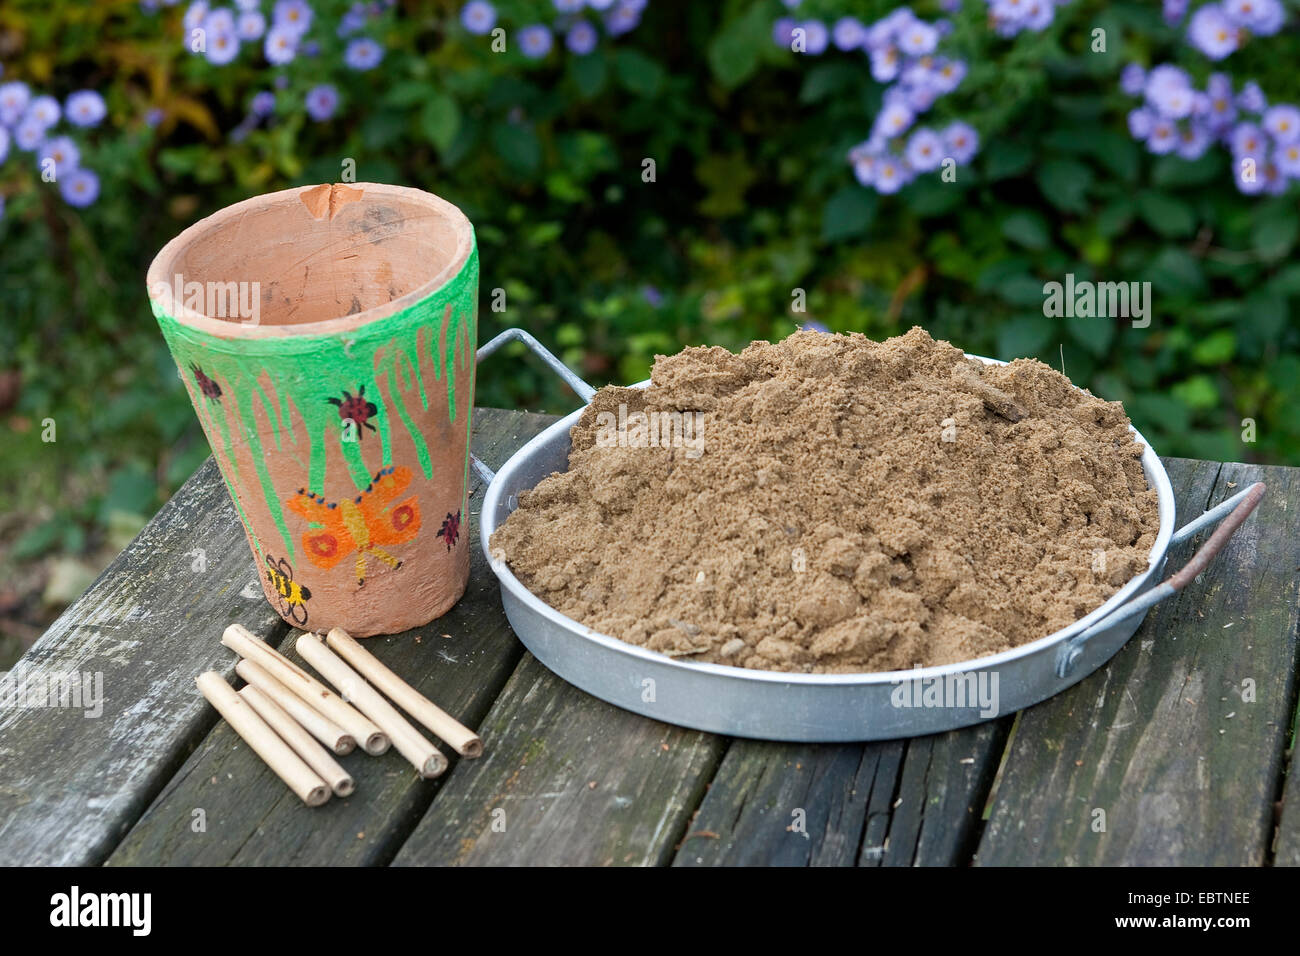 work material for an insect breeding help, Germany - Stock Image